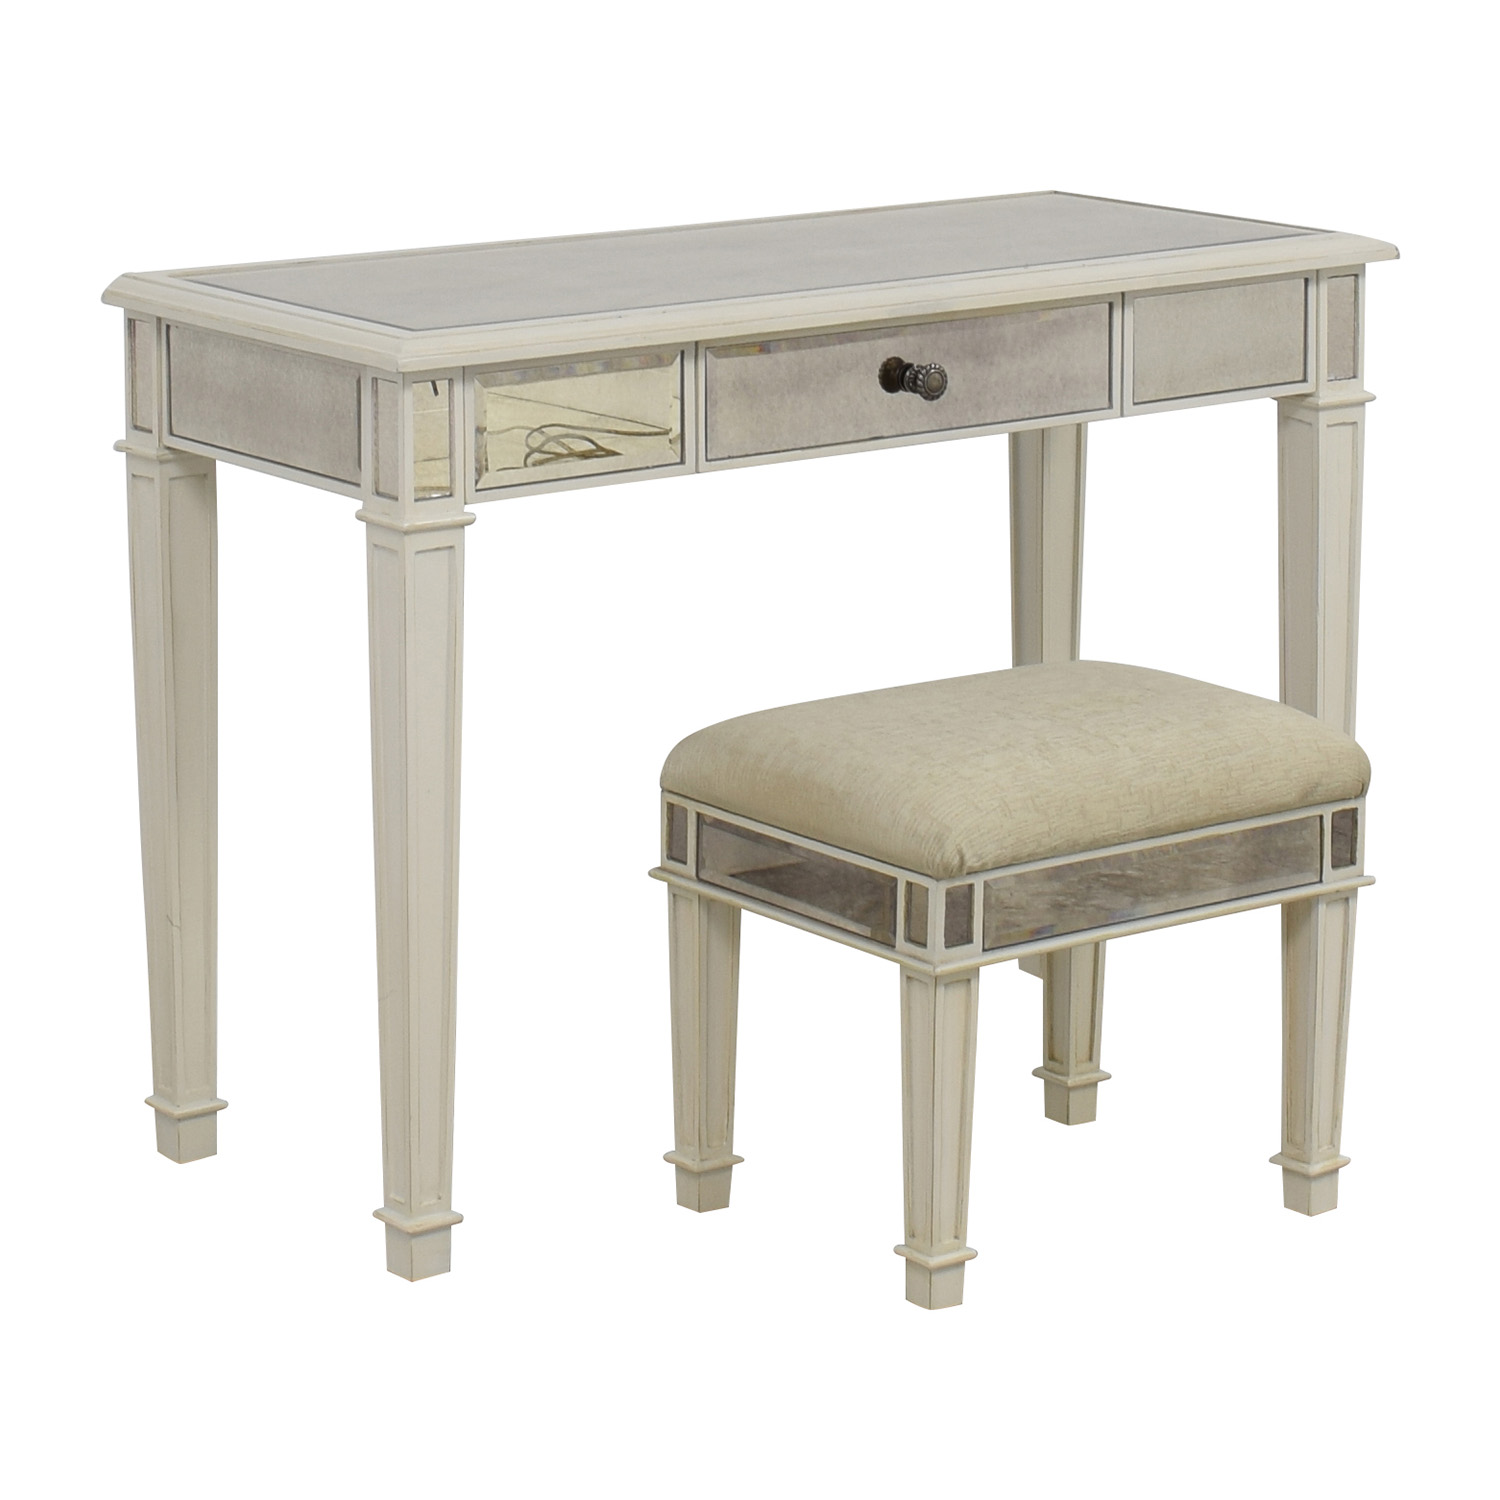 Fantastic 74 Off Pier 1 Pier 1 Imports Antique White Mirrored Vanity Table And Stool Tables Caraccident5 Cool Chair Designs And Ideas Caraccident5Info